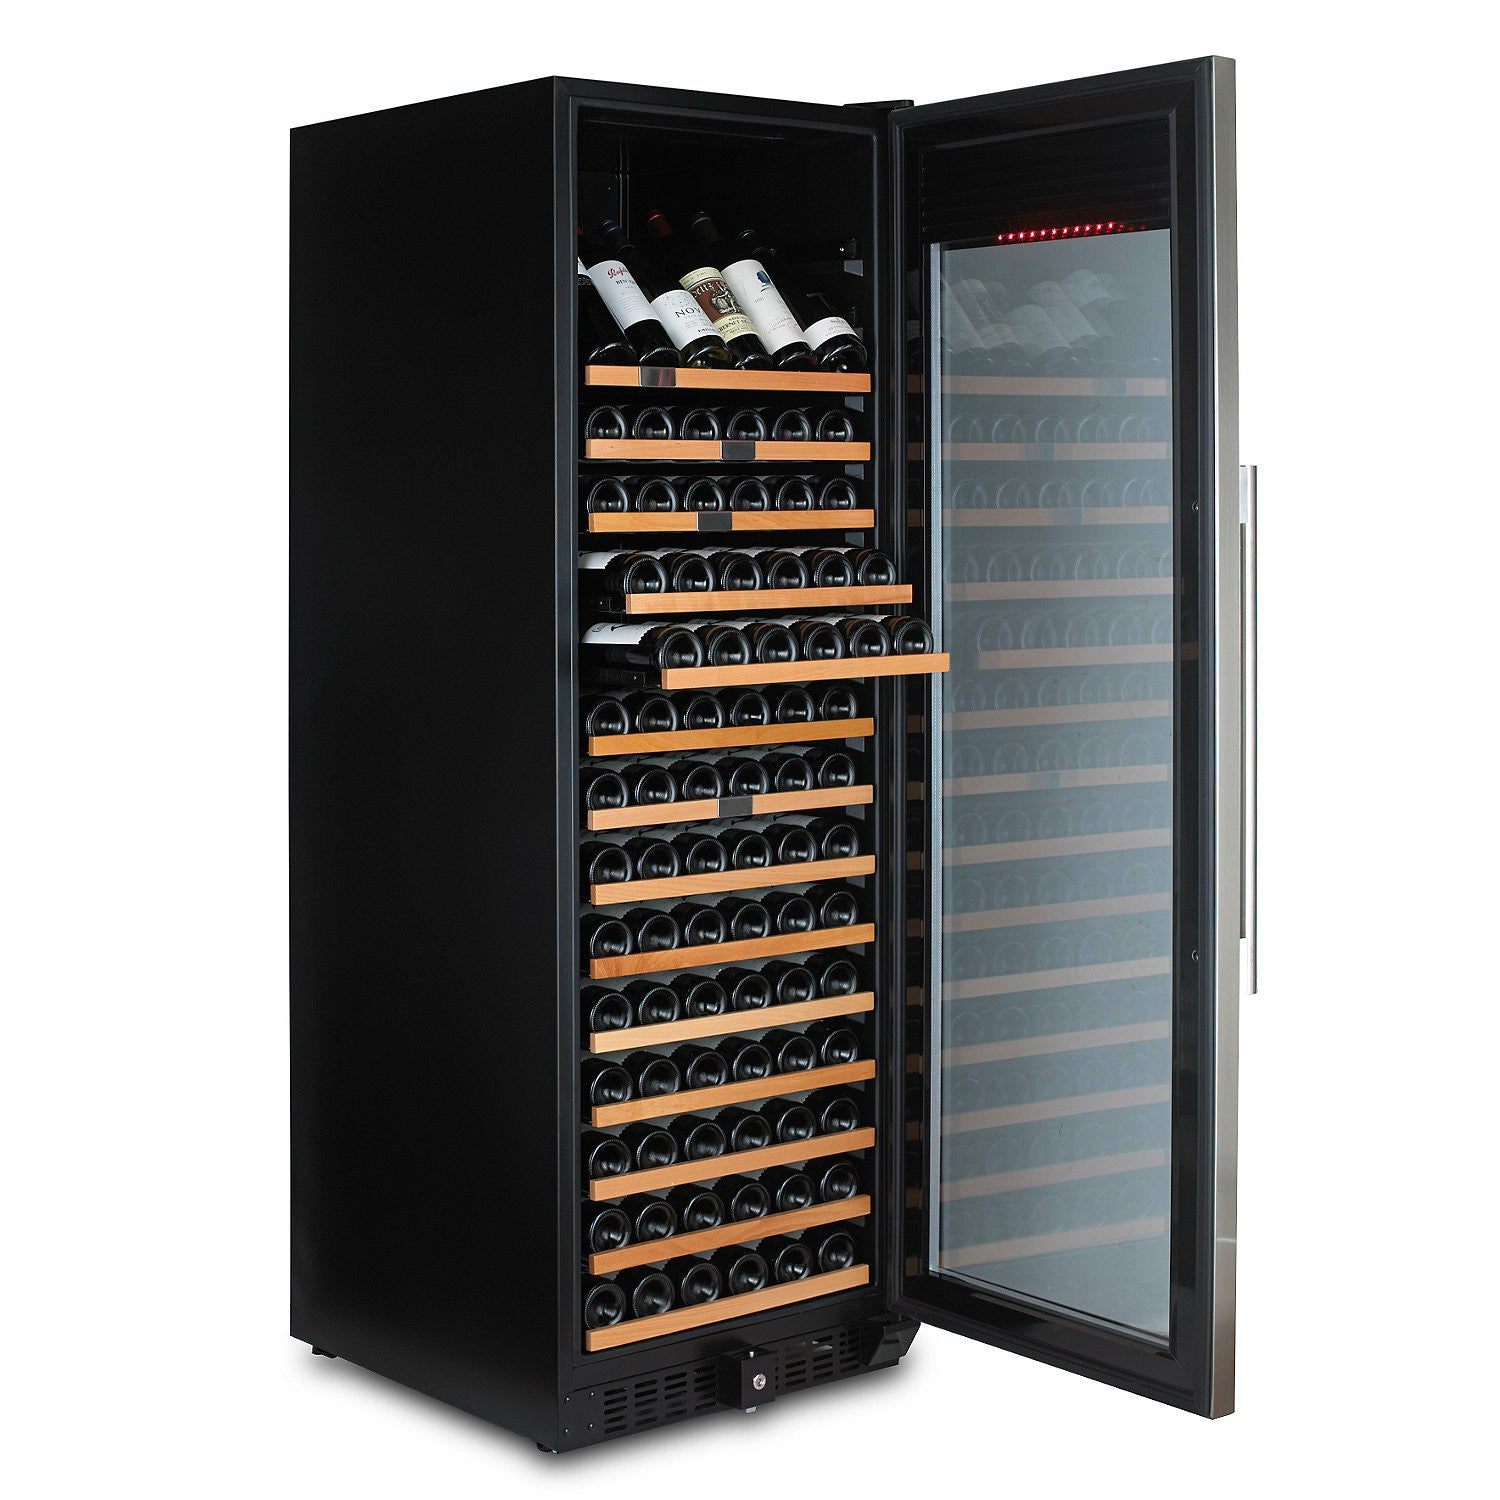 Find helpful customer reviews and review ratings for Wine Enthusiast N'Finity Modular Wine Cellar with With Glass and Stainless Steel Door, Bottle Capacity at collegenewhampshire938.ml Read honest and unbiased product reviews from our users.